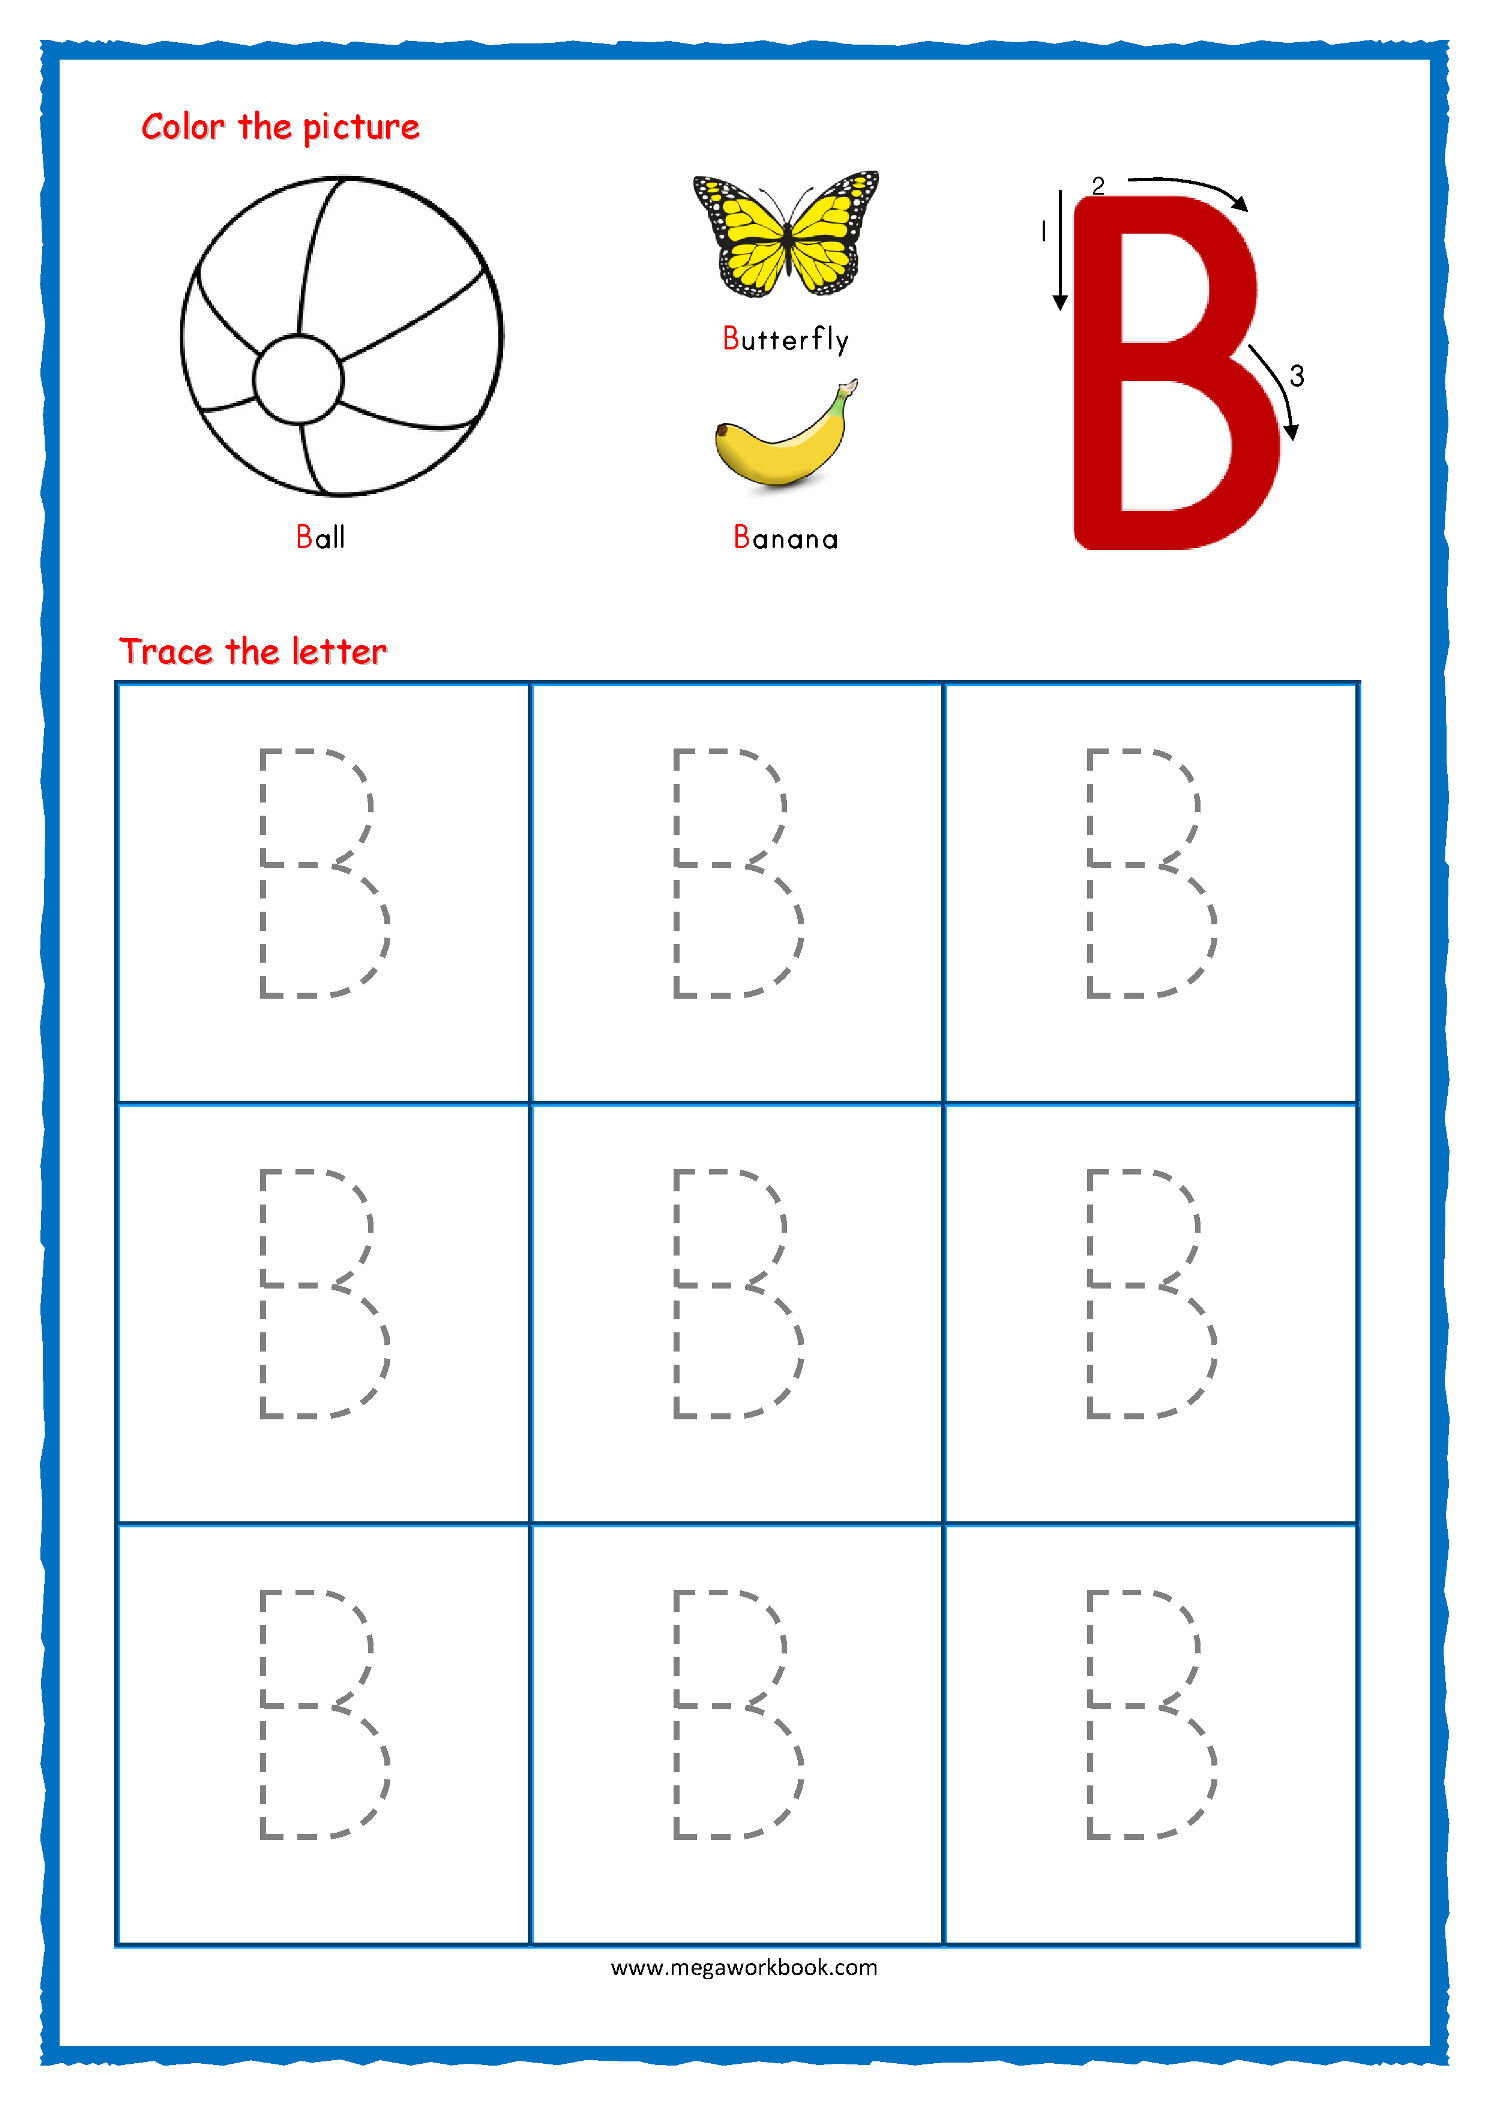 Tracing Letters - Alphabet Tracing - Capital Letters with Alphabet Tracing Cards Pdf